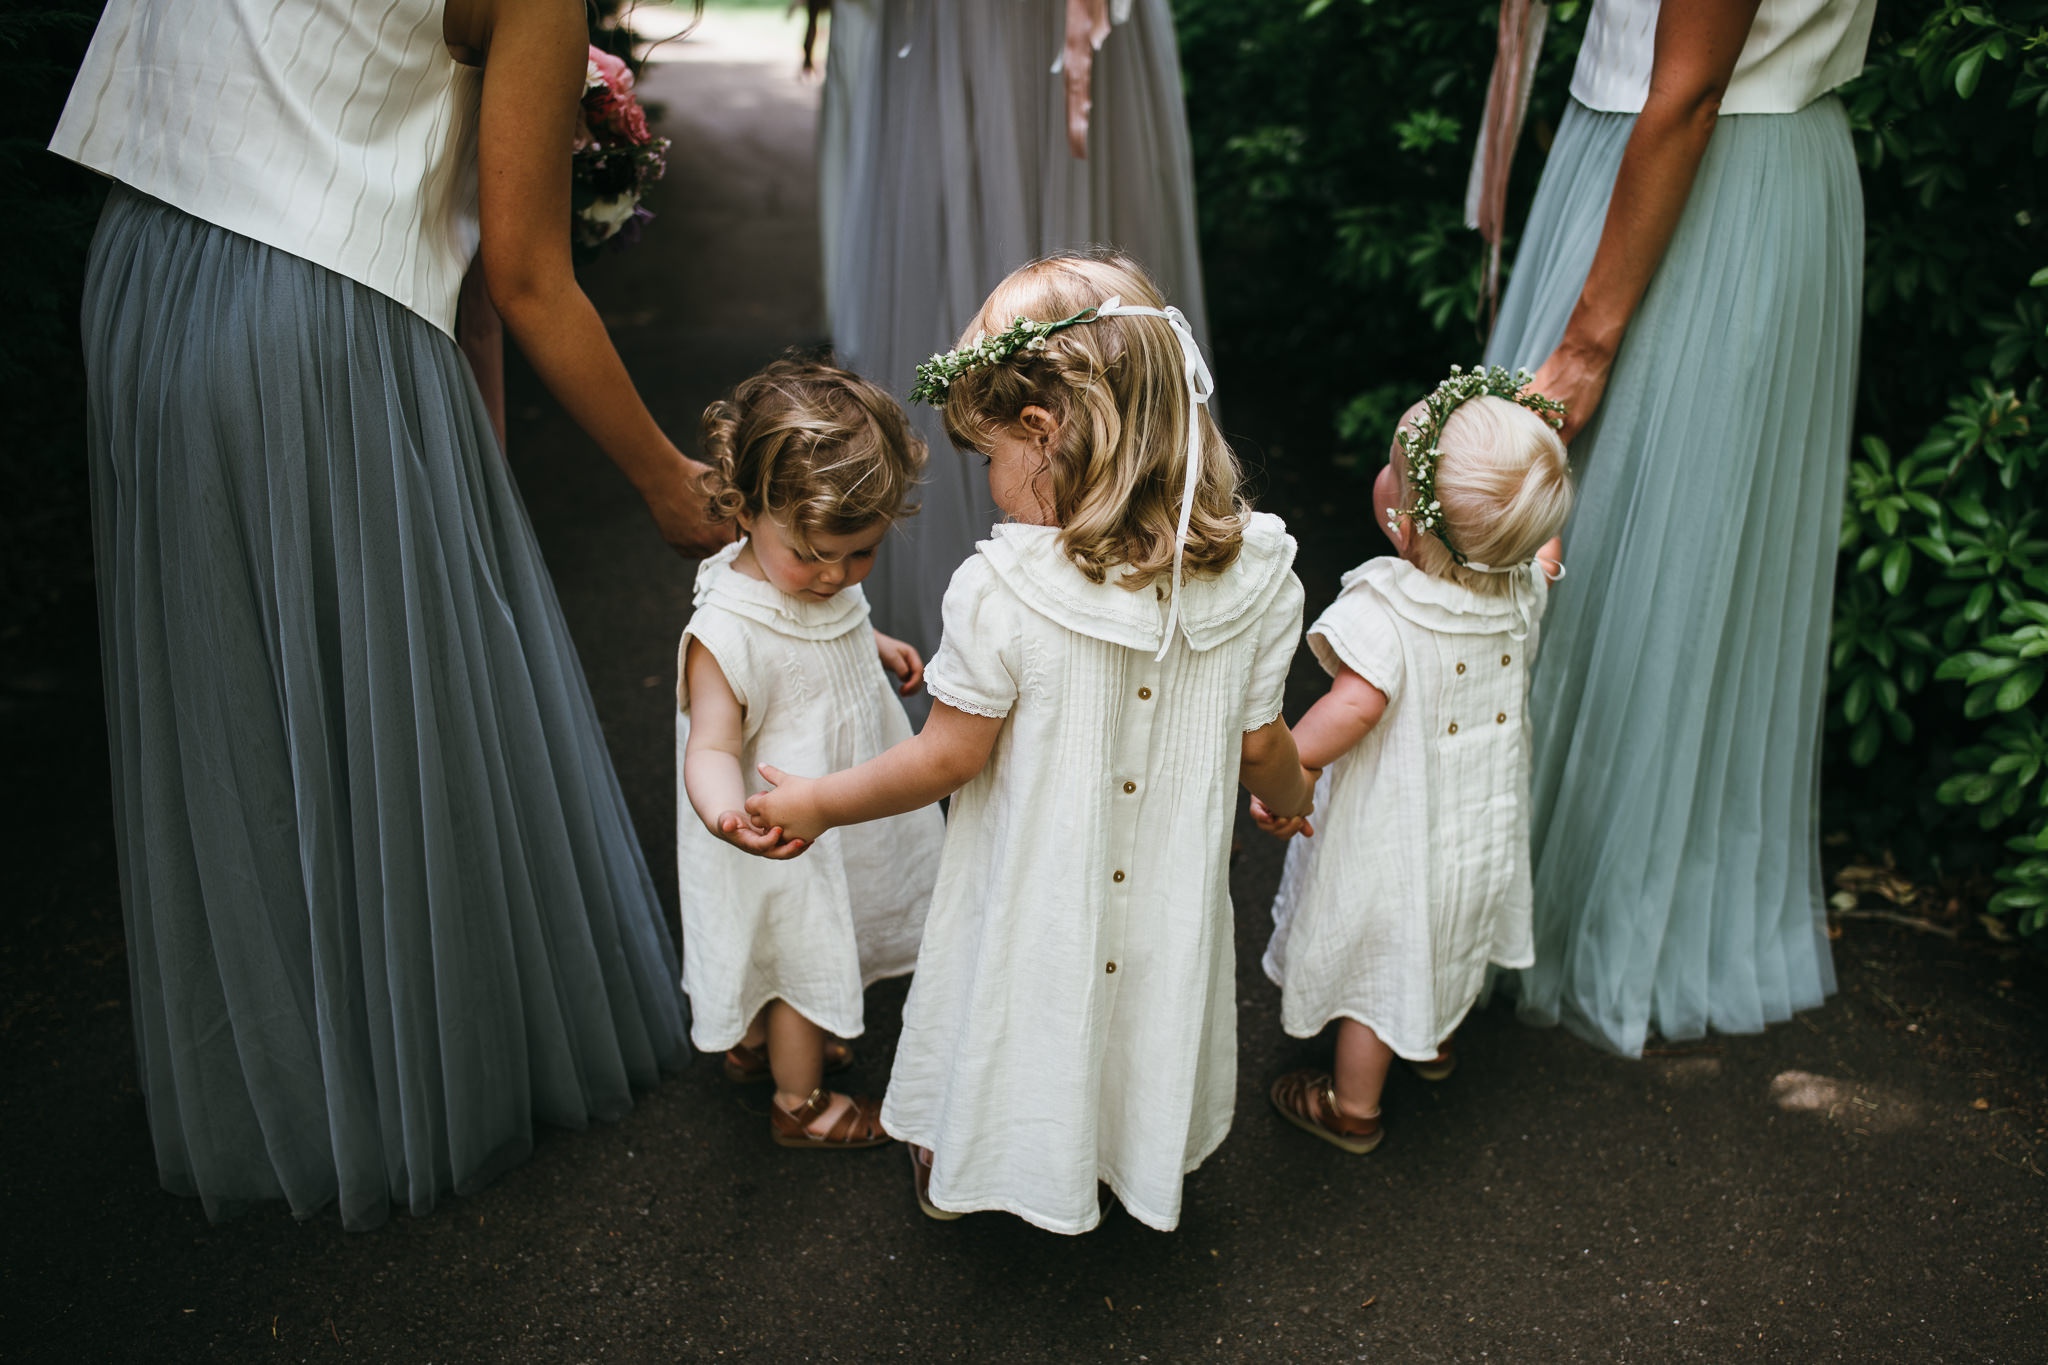 Flowergirls in Laure de Sagazan dresses